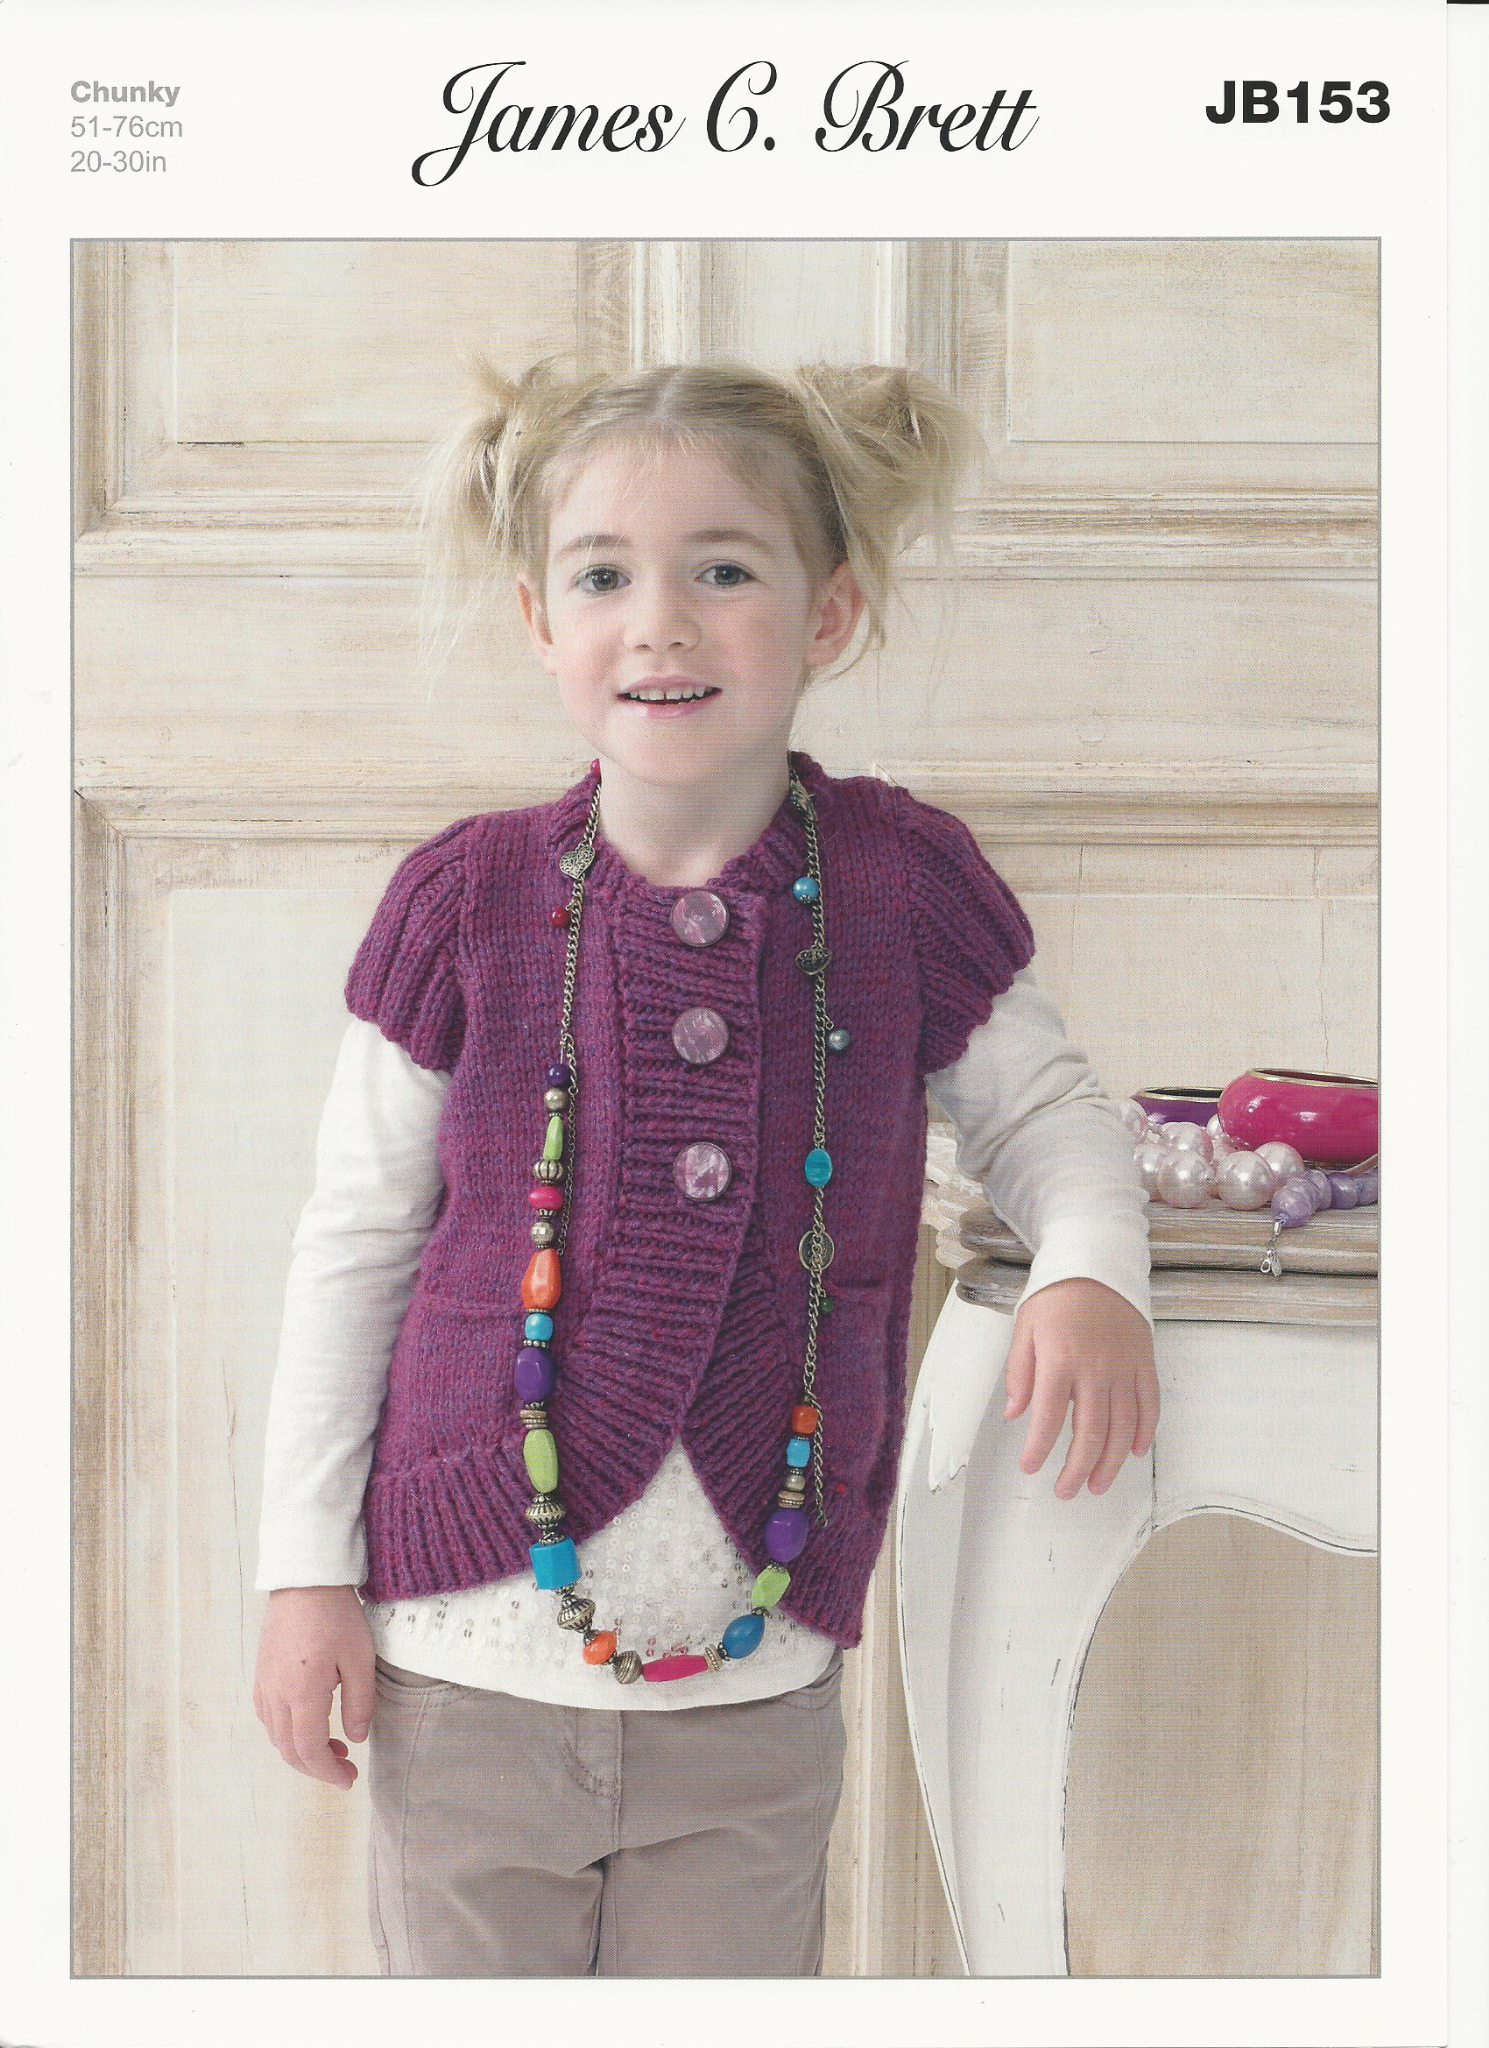 Children s Cardigan Knitting Patterns : James C Brett Childrens Cardigan Knitting Pattern in Chunky with Merino JB153